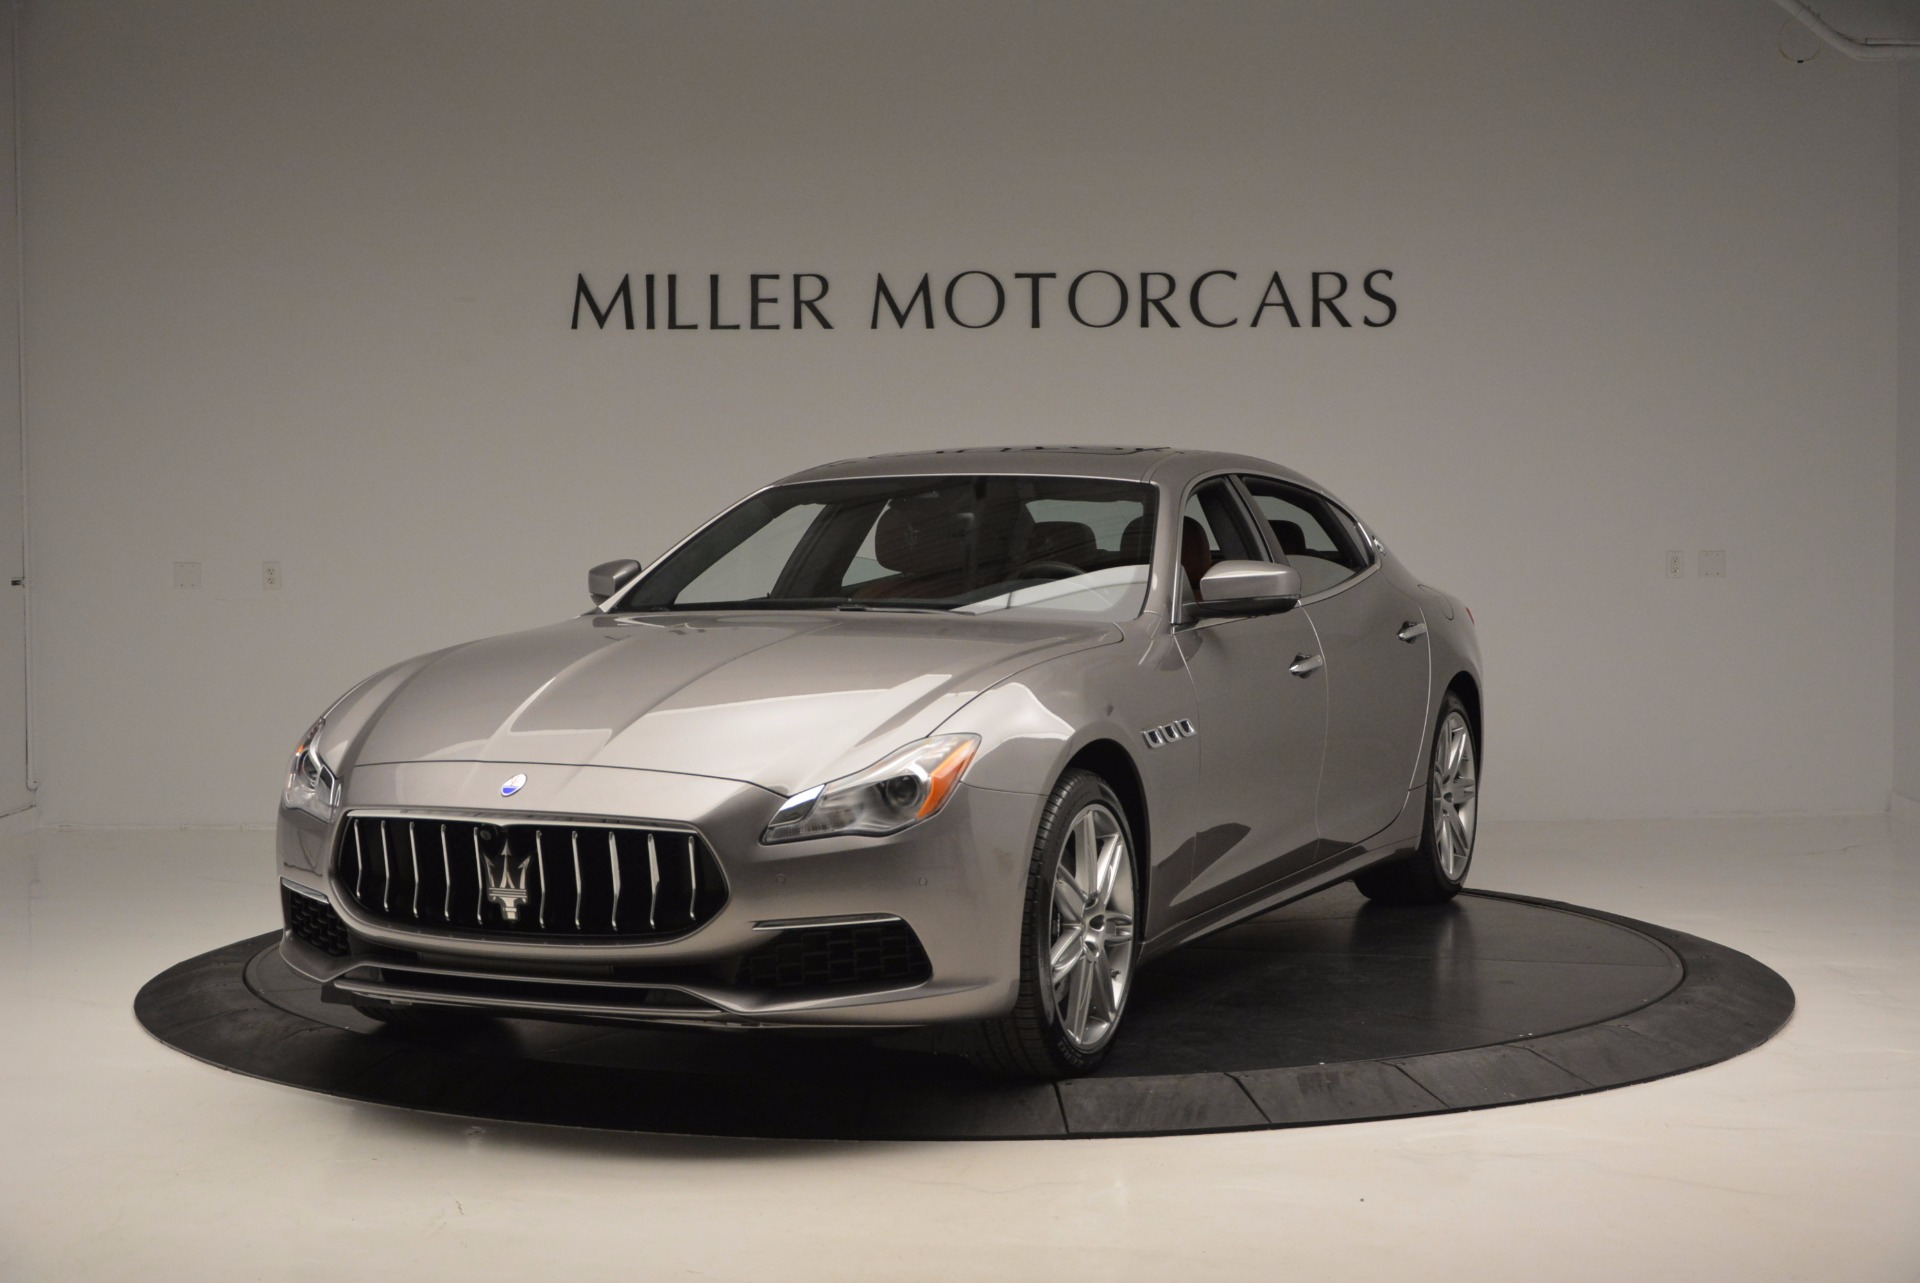 New 2017 Maserati Quattroporte S Q4 GranLusso For Sale 0 In Greenwich, CT